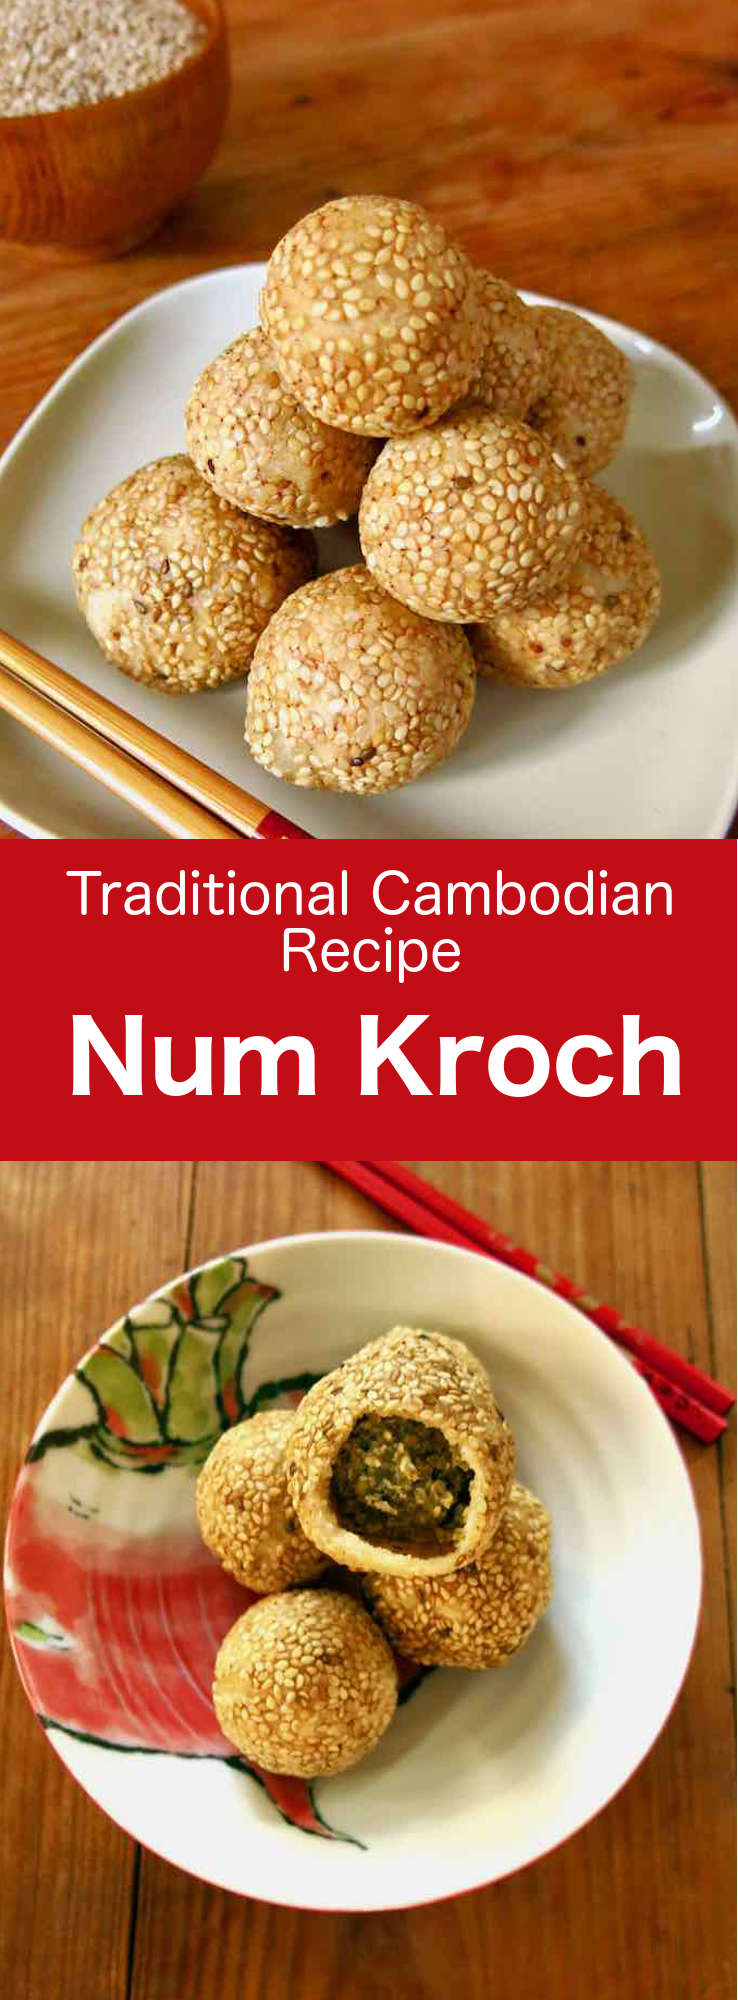 Num kroch (or nom kroch) is a Cambodian dessert consisting of small balls of glutinous rice flour stuffed with mung bean paste that are coated with sesame seeds before being fried. #Cambodian #CambodianRecipe #CambodianCuisine #AsianCuisine #AsianRecipe #WorldCuisine #196flavors